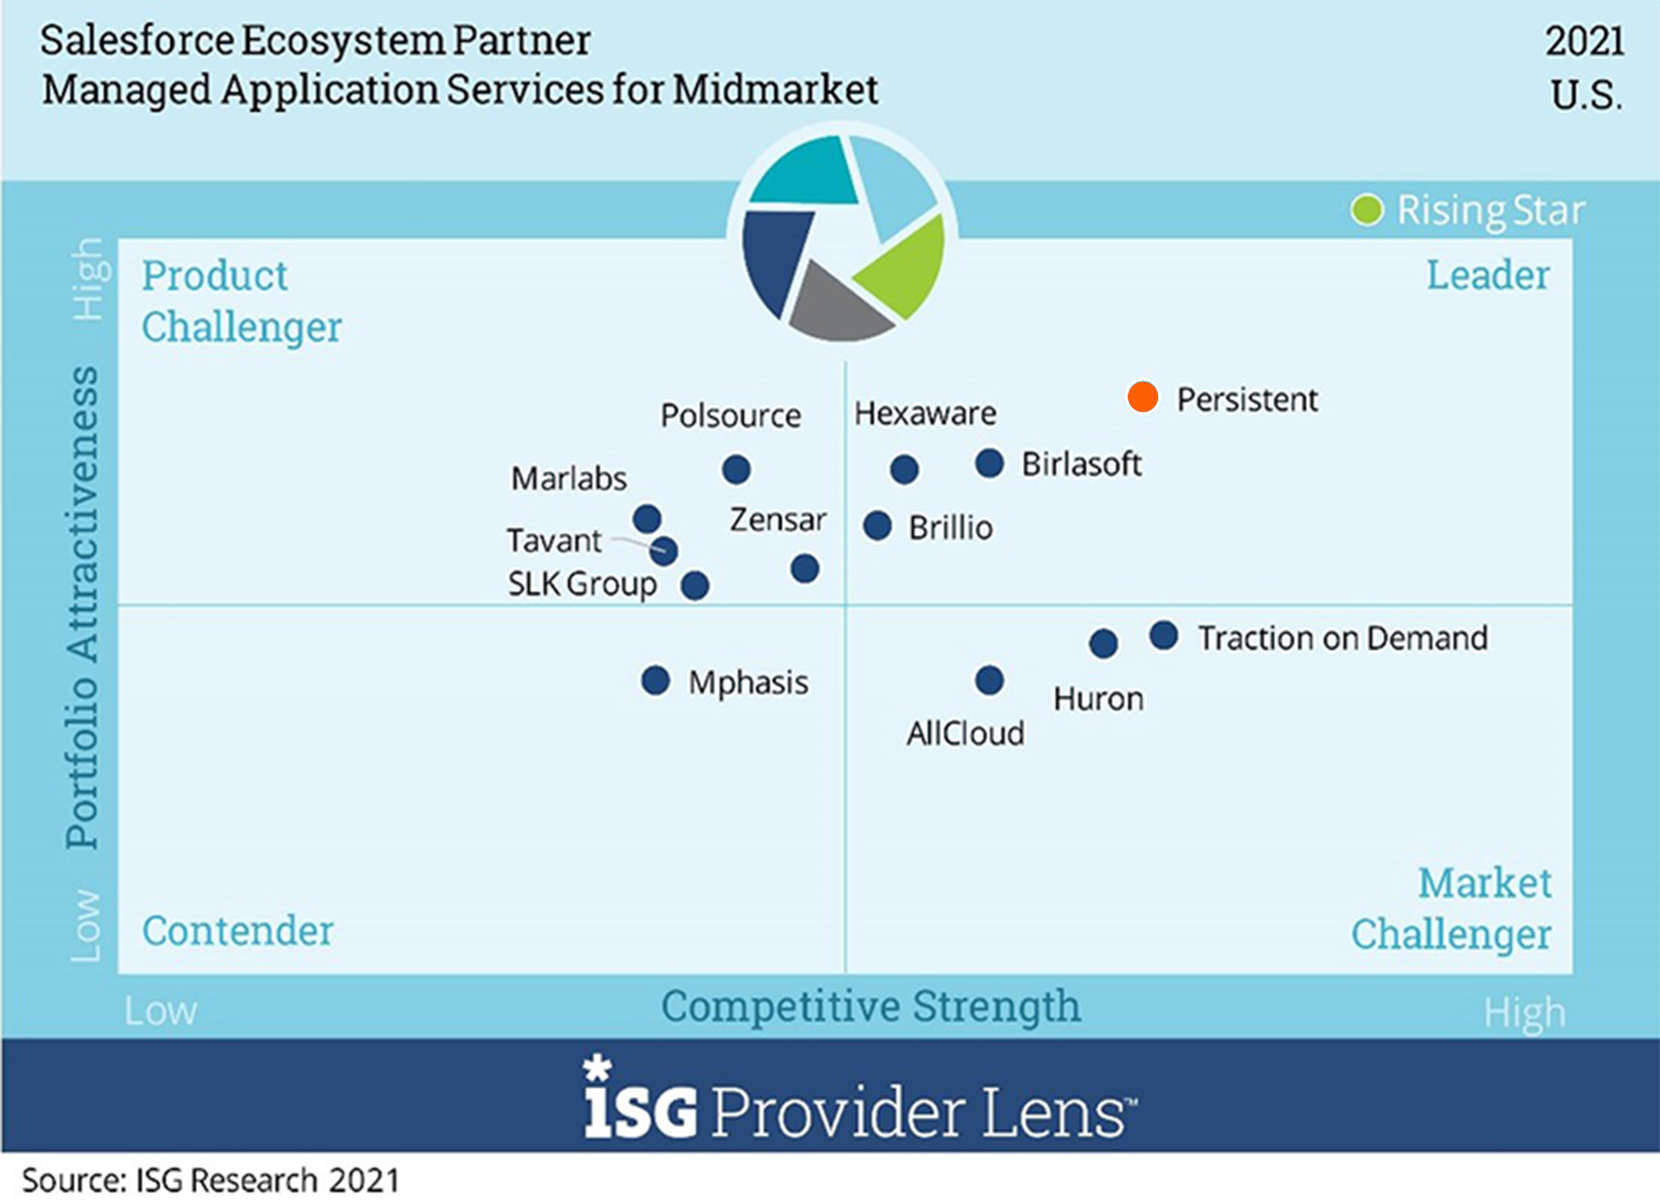 'Leader' in Managed Application Services – Midmarket in U.S. and Germany